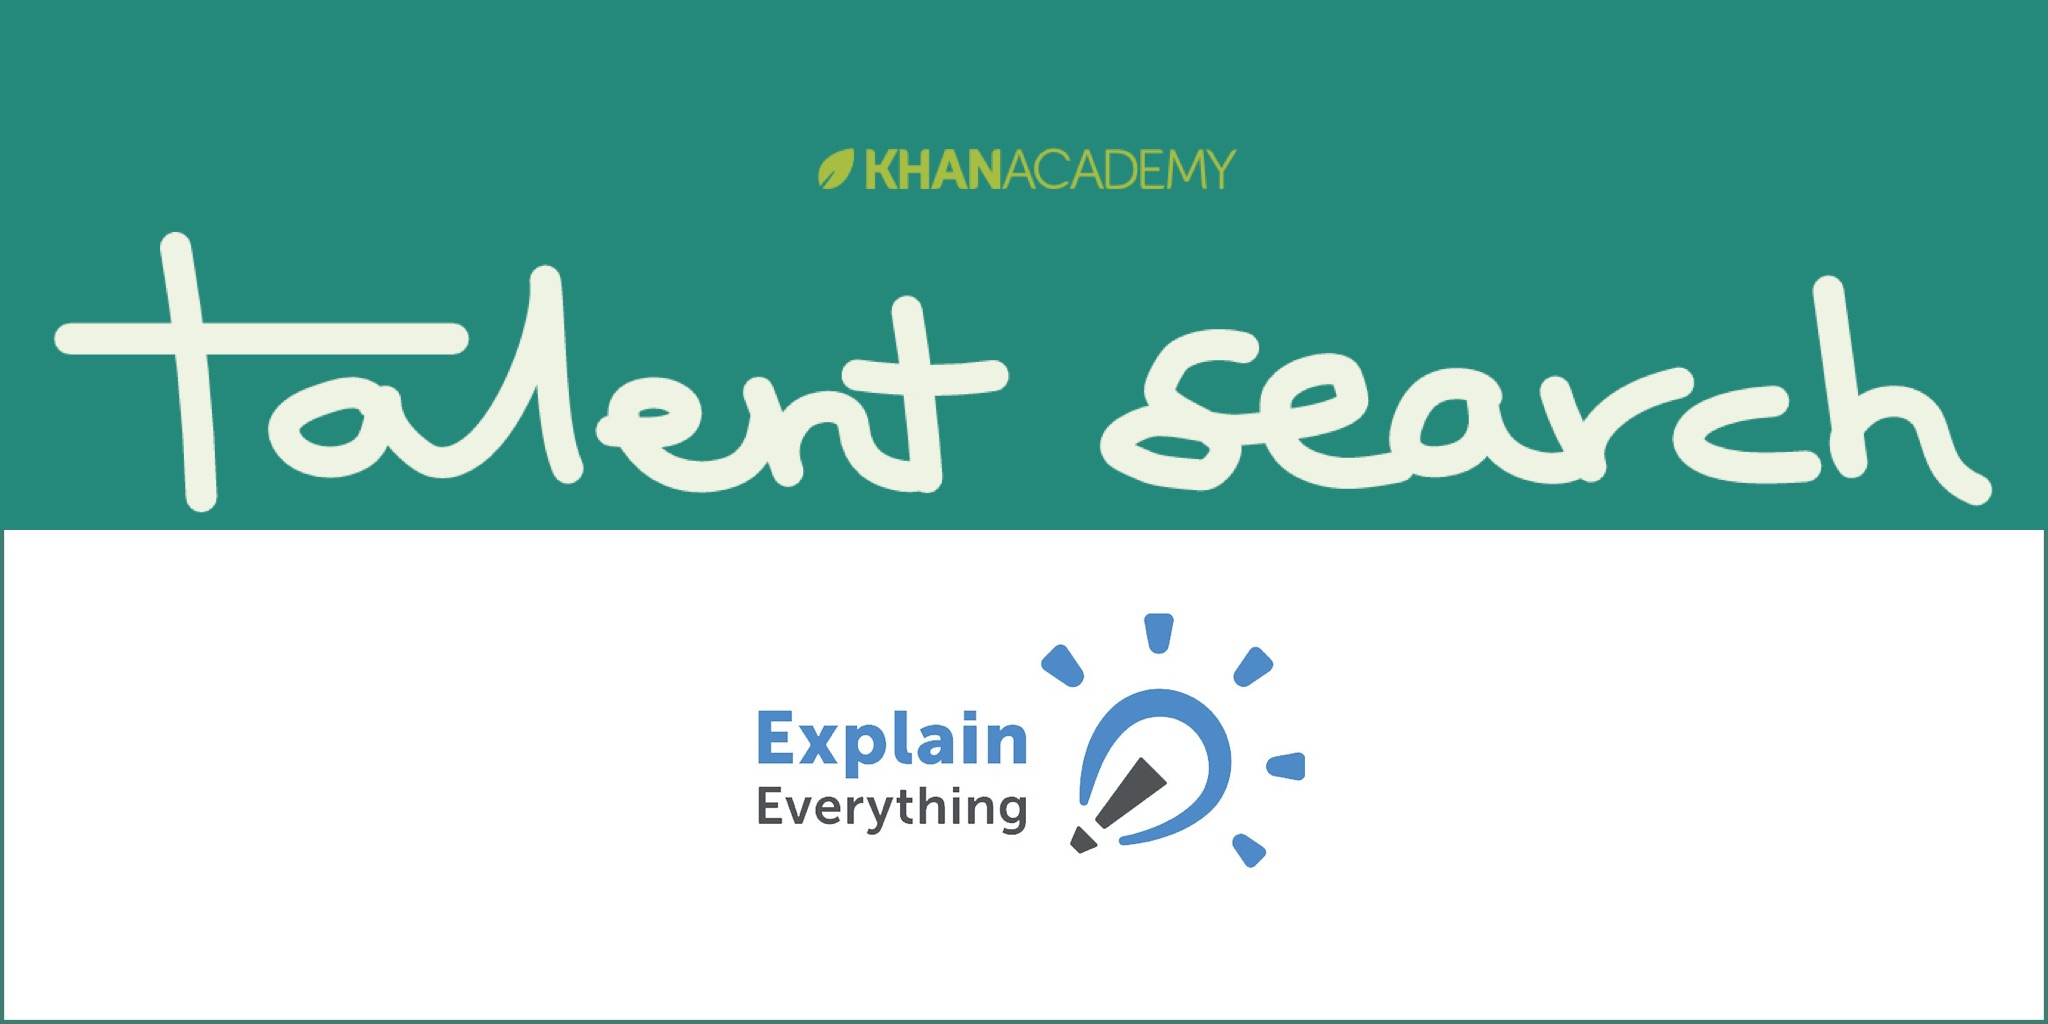 Khan Academy Explain Everything And Khan Academy Talent Search Explain